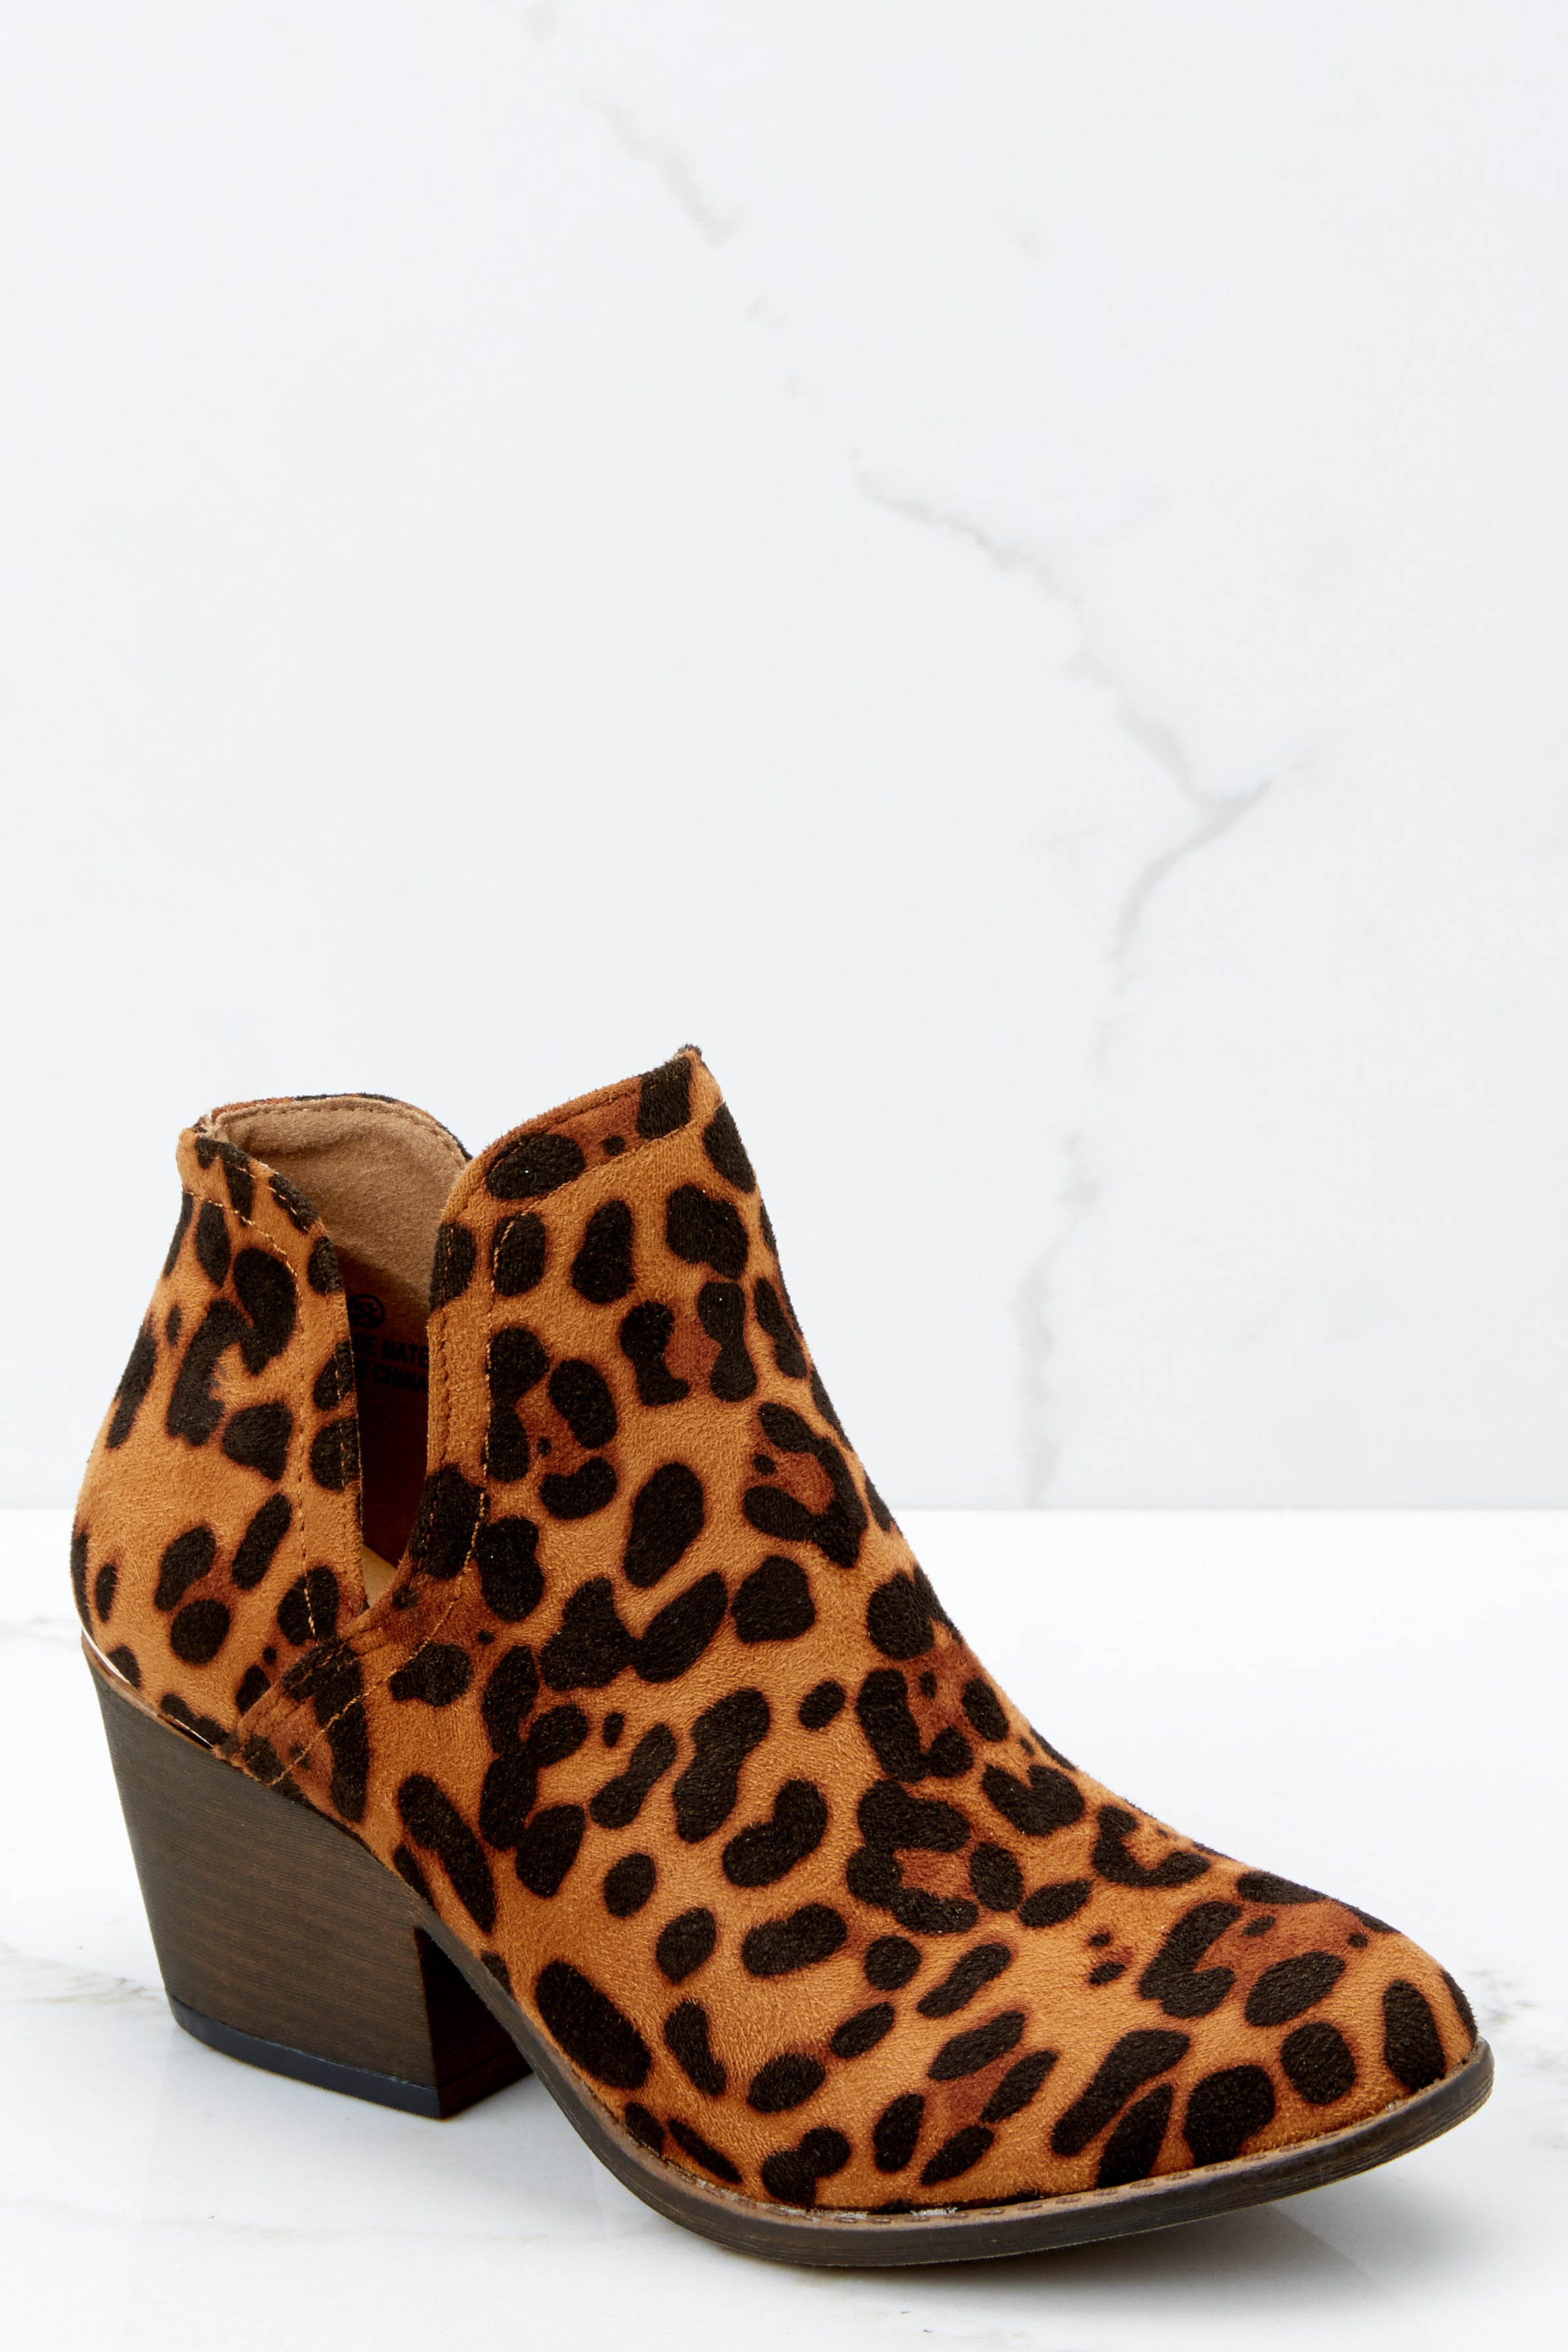 00dec079c865 Cute Leopard Booties - Trendy Ankle Boots - Booties - $38.00 – Red Dress